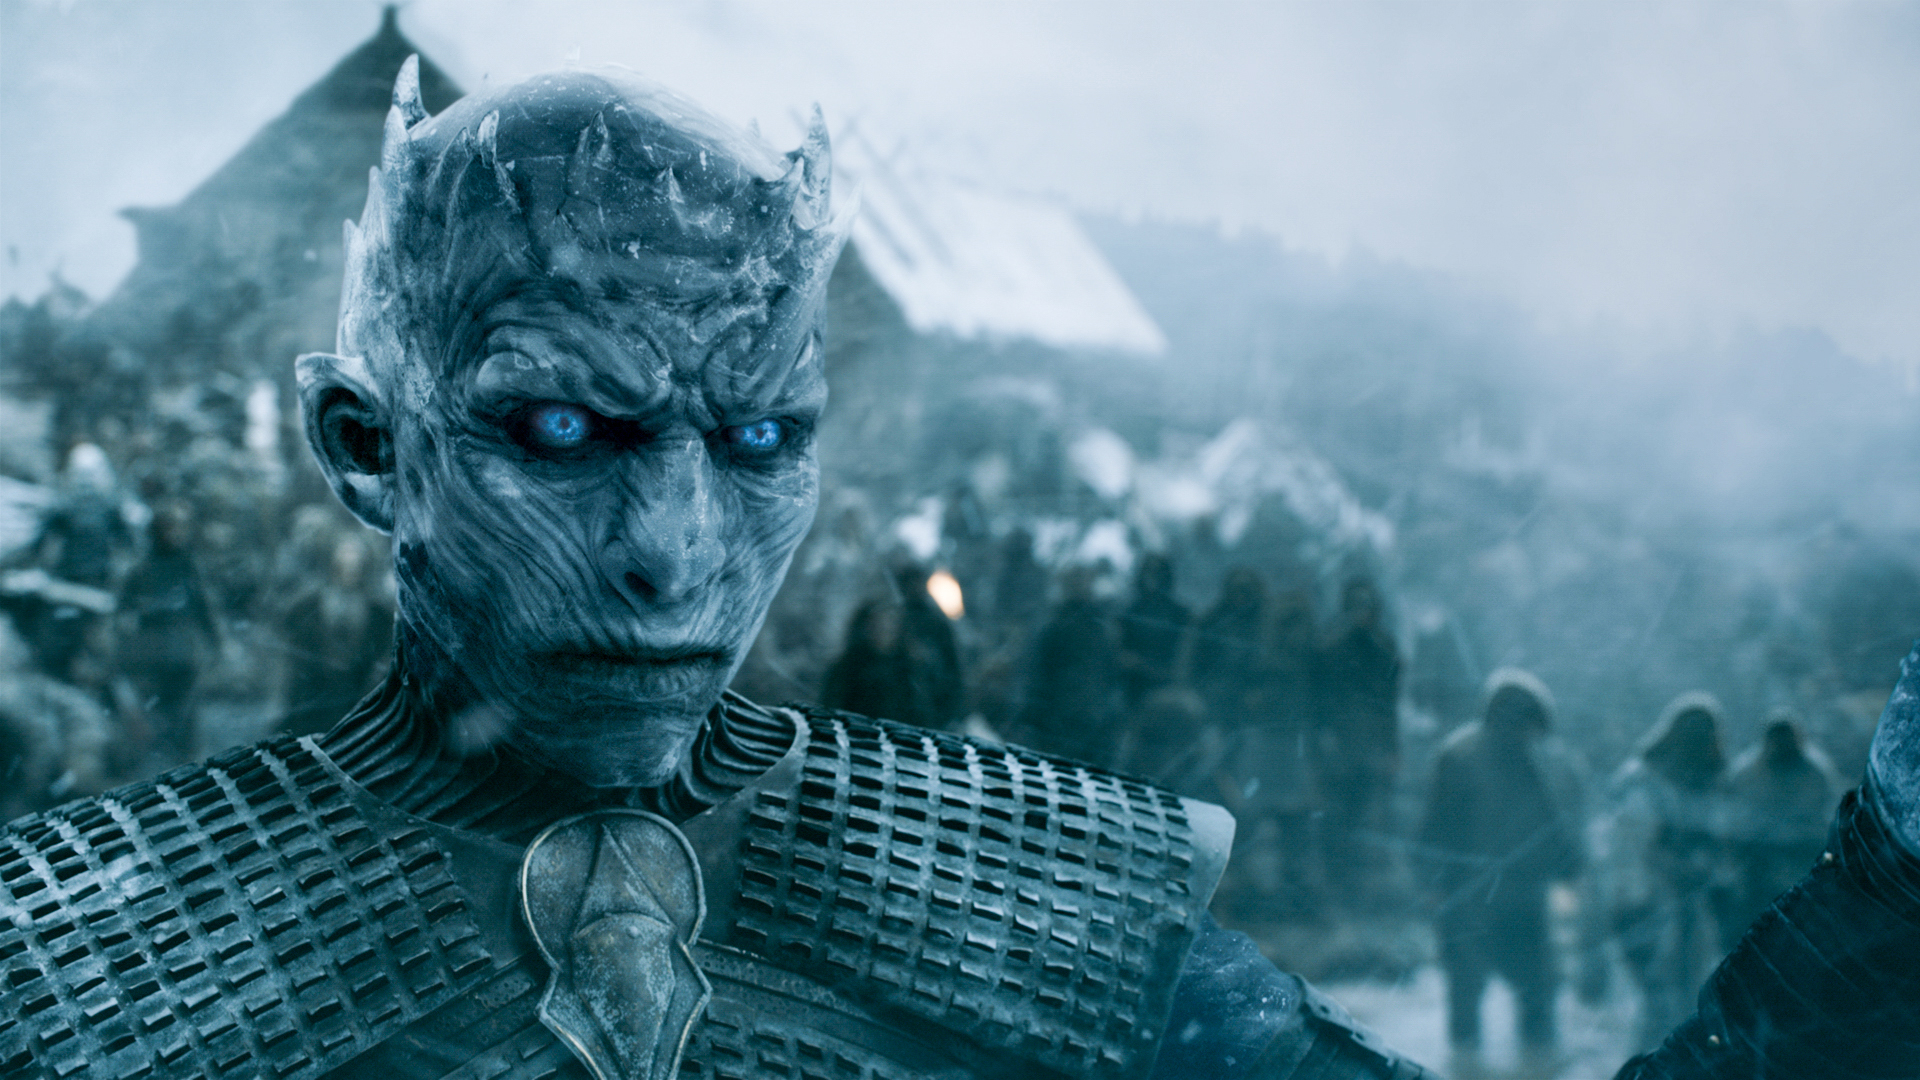 Manage your Game of Thrones withdrawal with one of these 17 shows - Vox